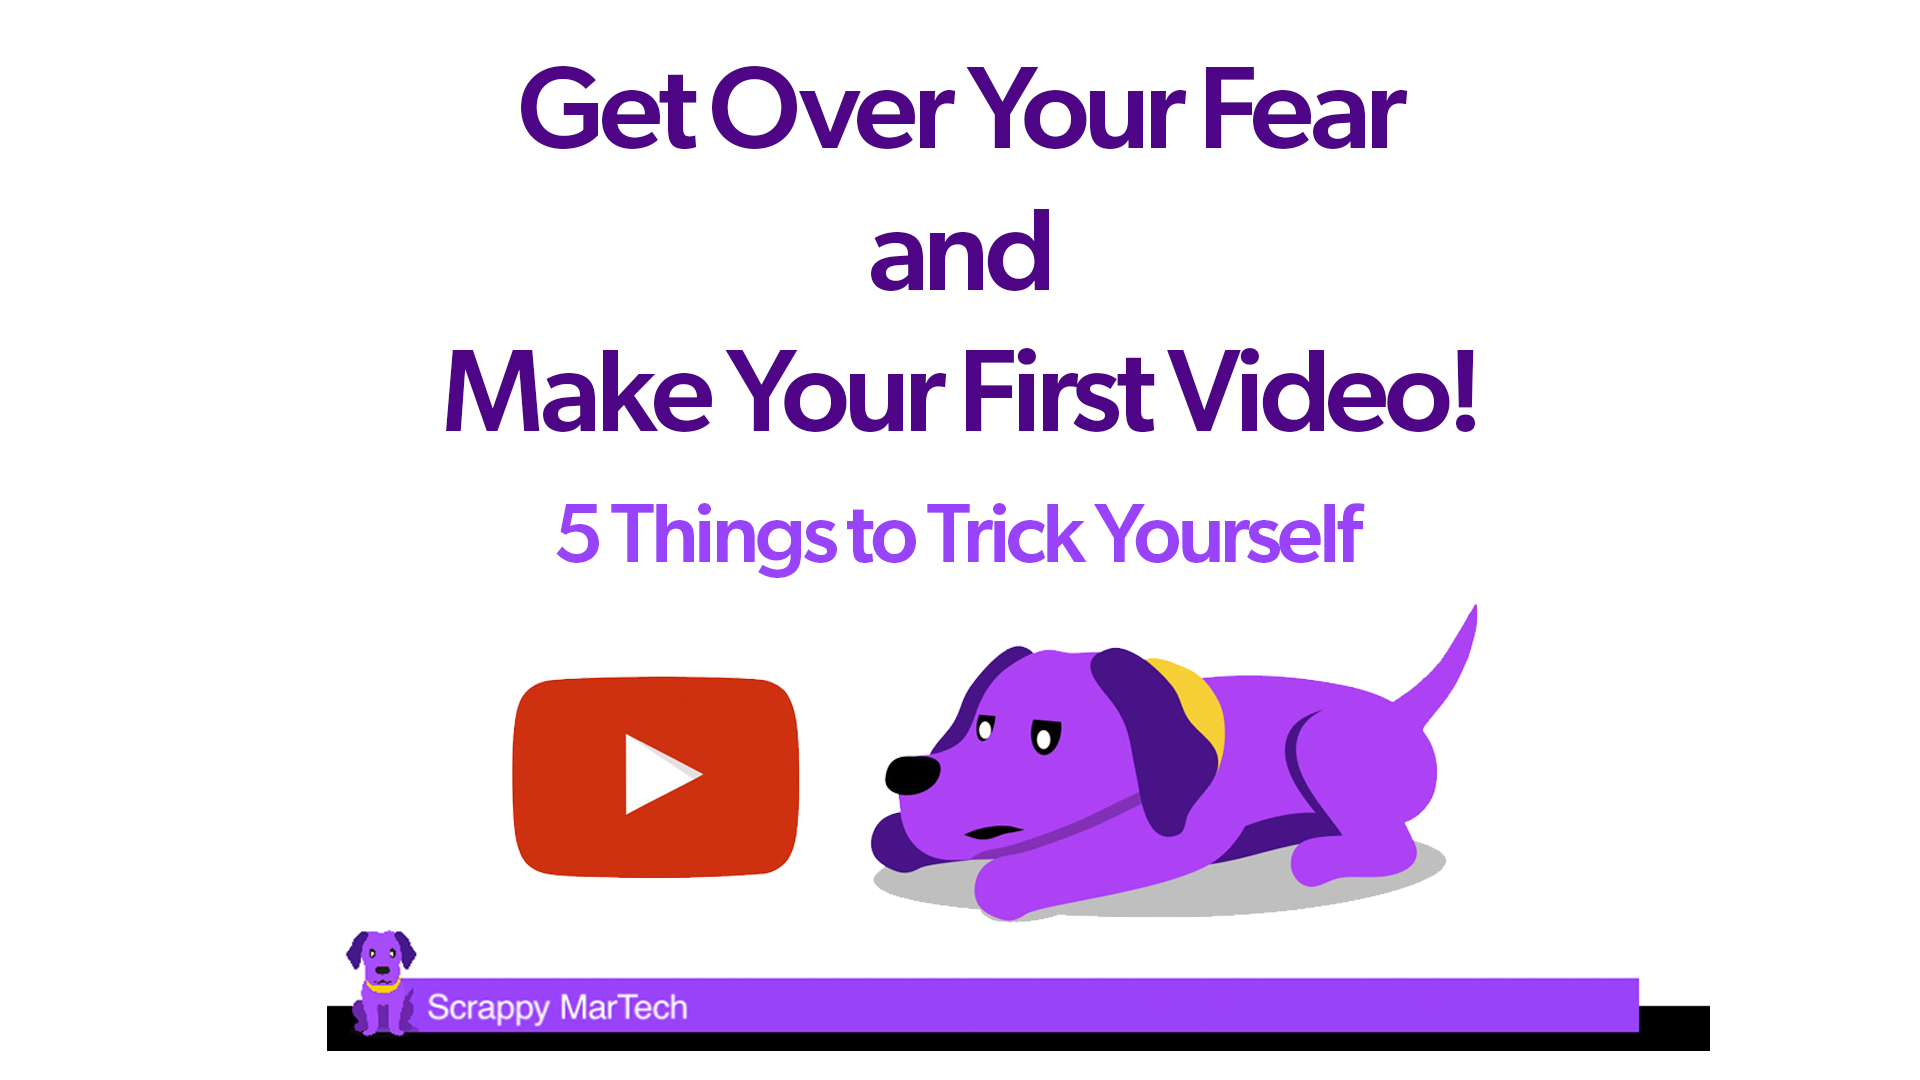 Get Over Your Fear and Make Your First Video